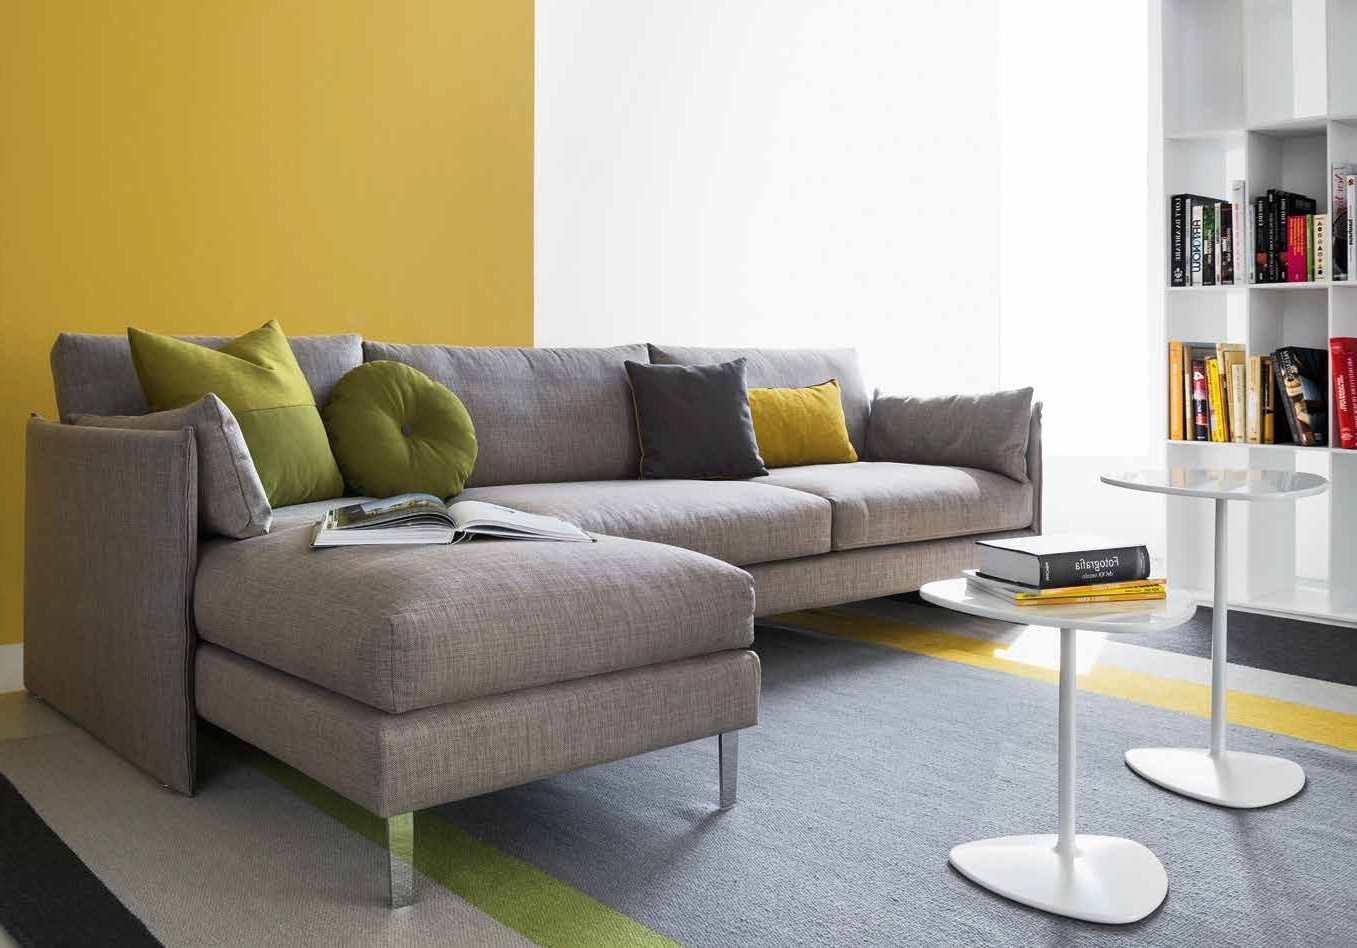 Urban Sectional Sofa Cs/3369, Calligaris Italy – Italmoda With Regard To Fashionable Nashua Nh Sectional Sofas (View 12 of 15)